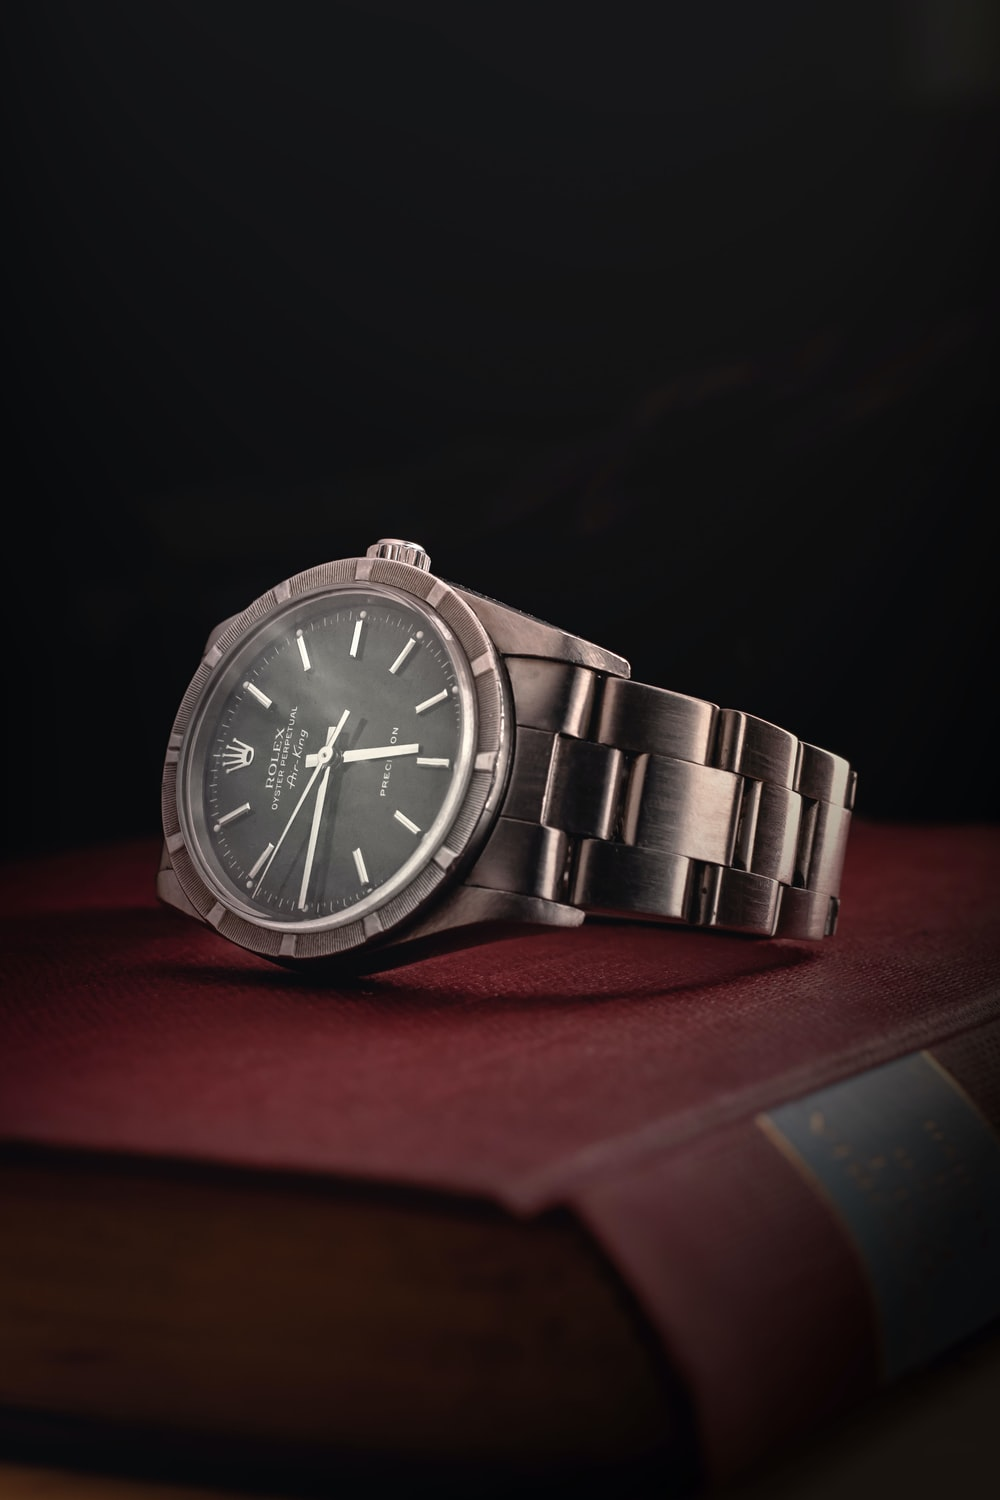 round silver-colored Rolex analog watch with link band